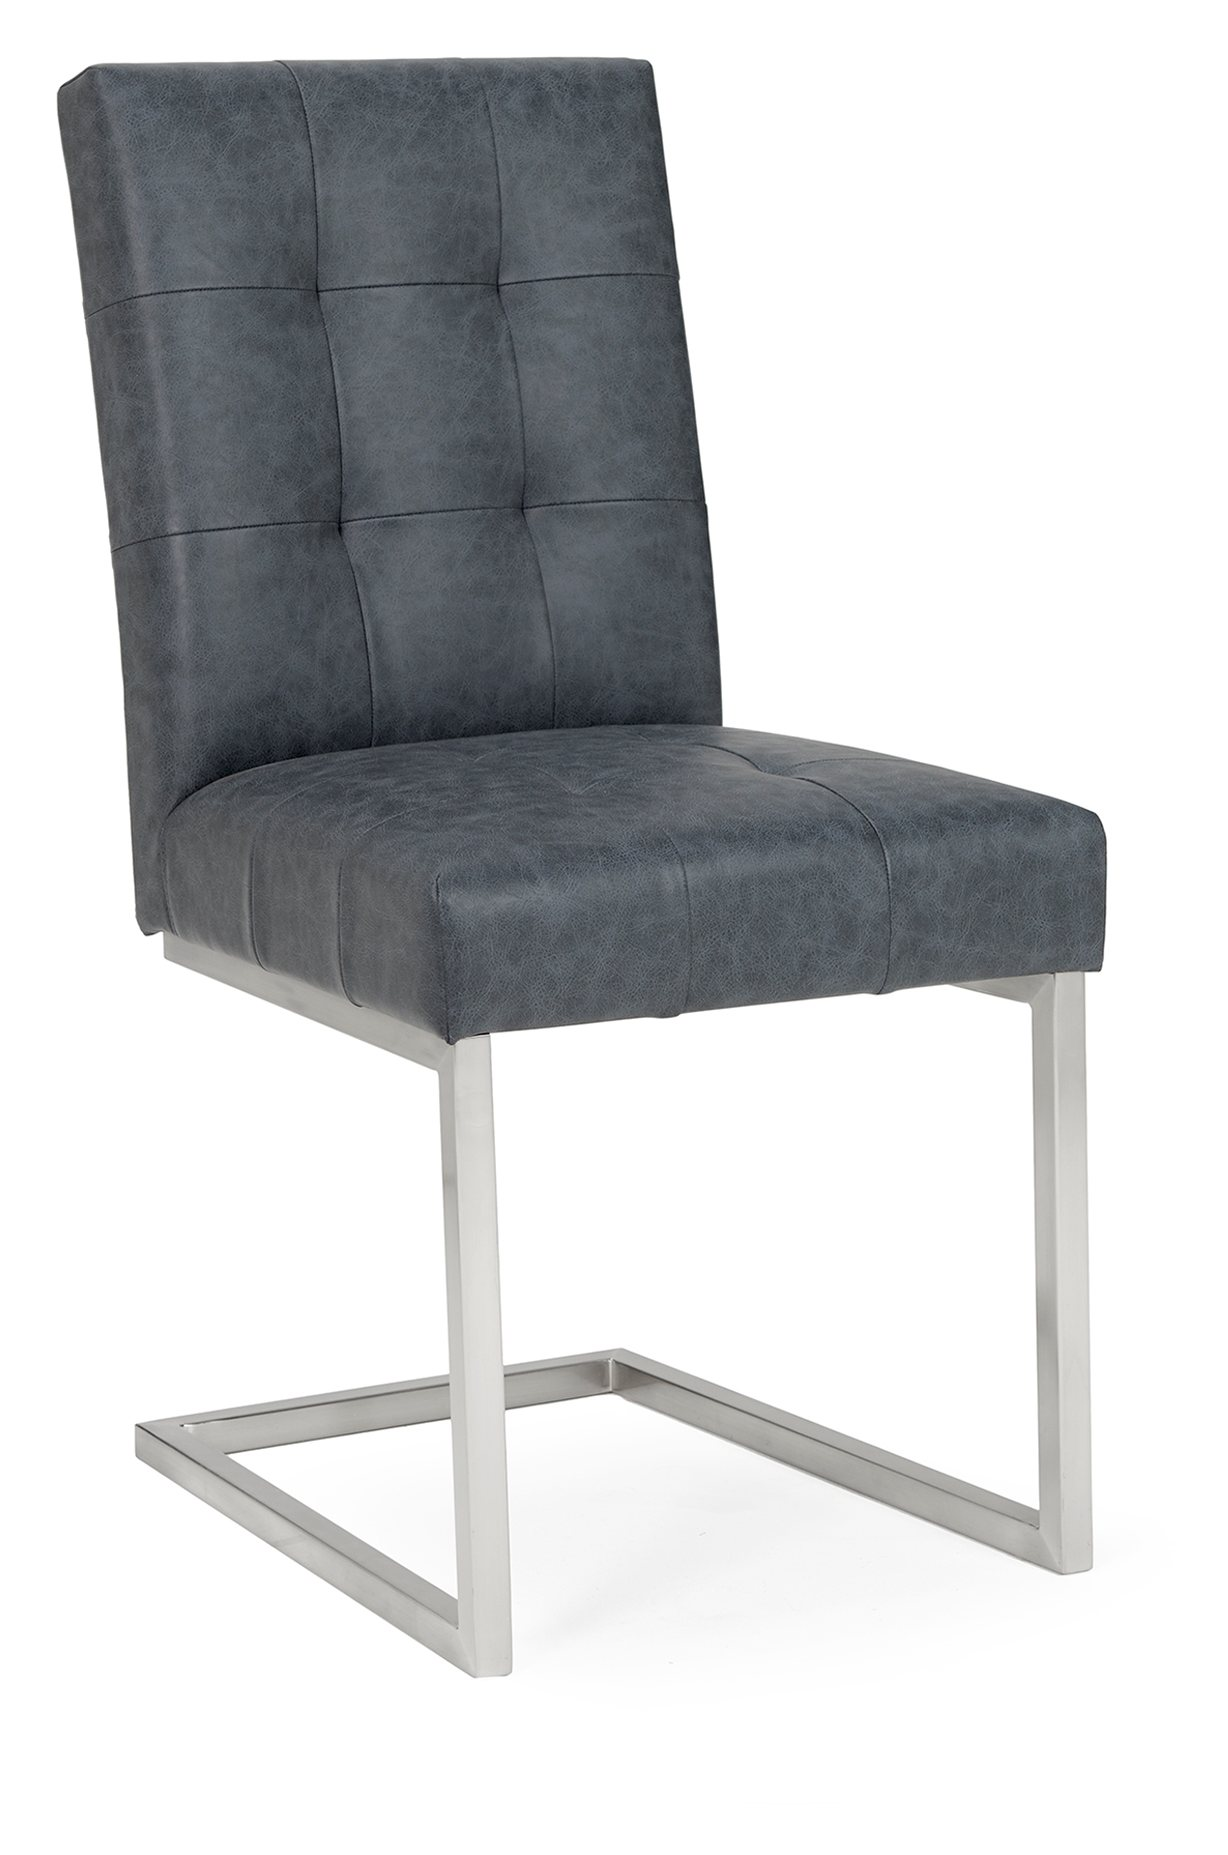 BRINDISI BONDED LEATHER DINING CHAIR - ANGLE DETAIL